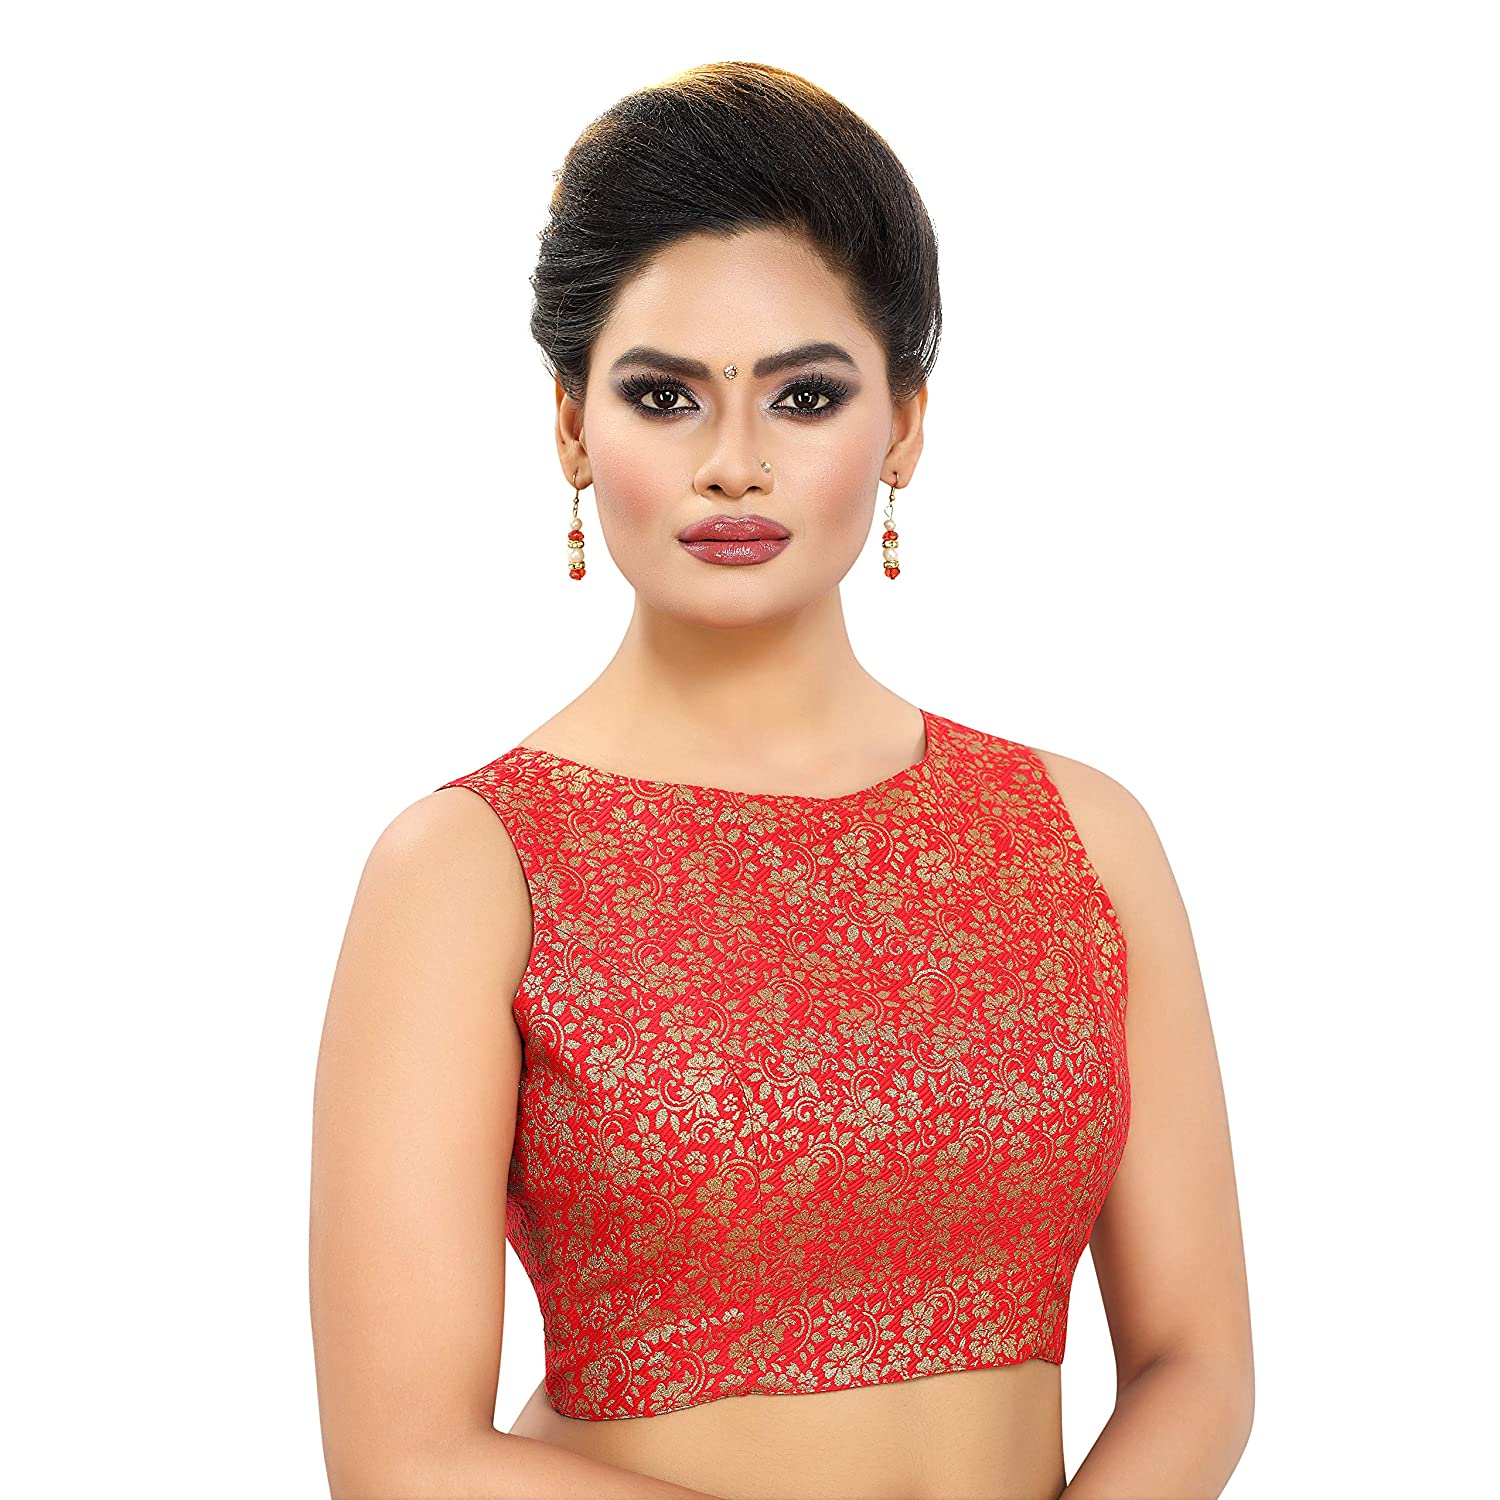 e4d9b5eb7127ab MADHU FASHION s WOMEN s BROCADE READYMADE SLEEVELESS SAREE BLOUSE with BOAT  NECK  Amazon.in  Clothing   Accessories